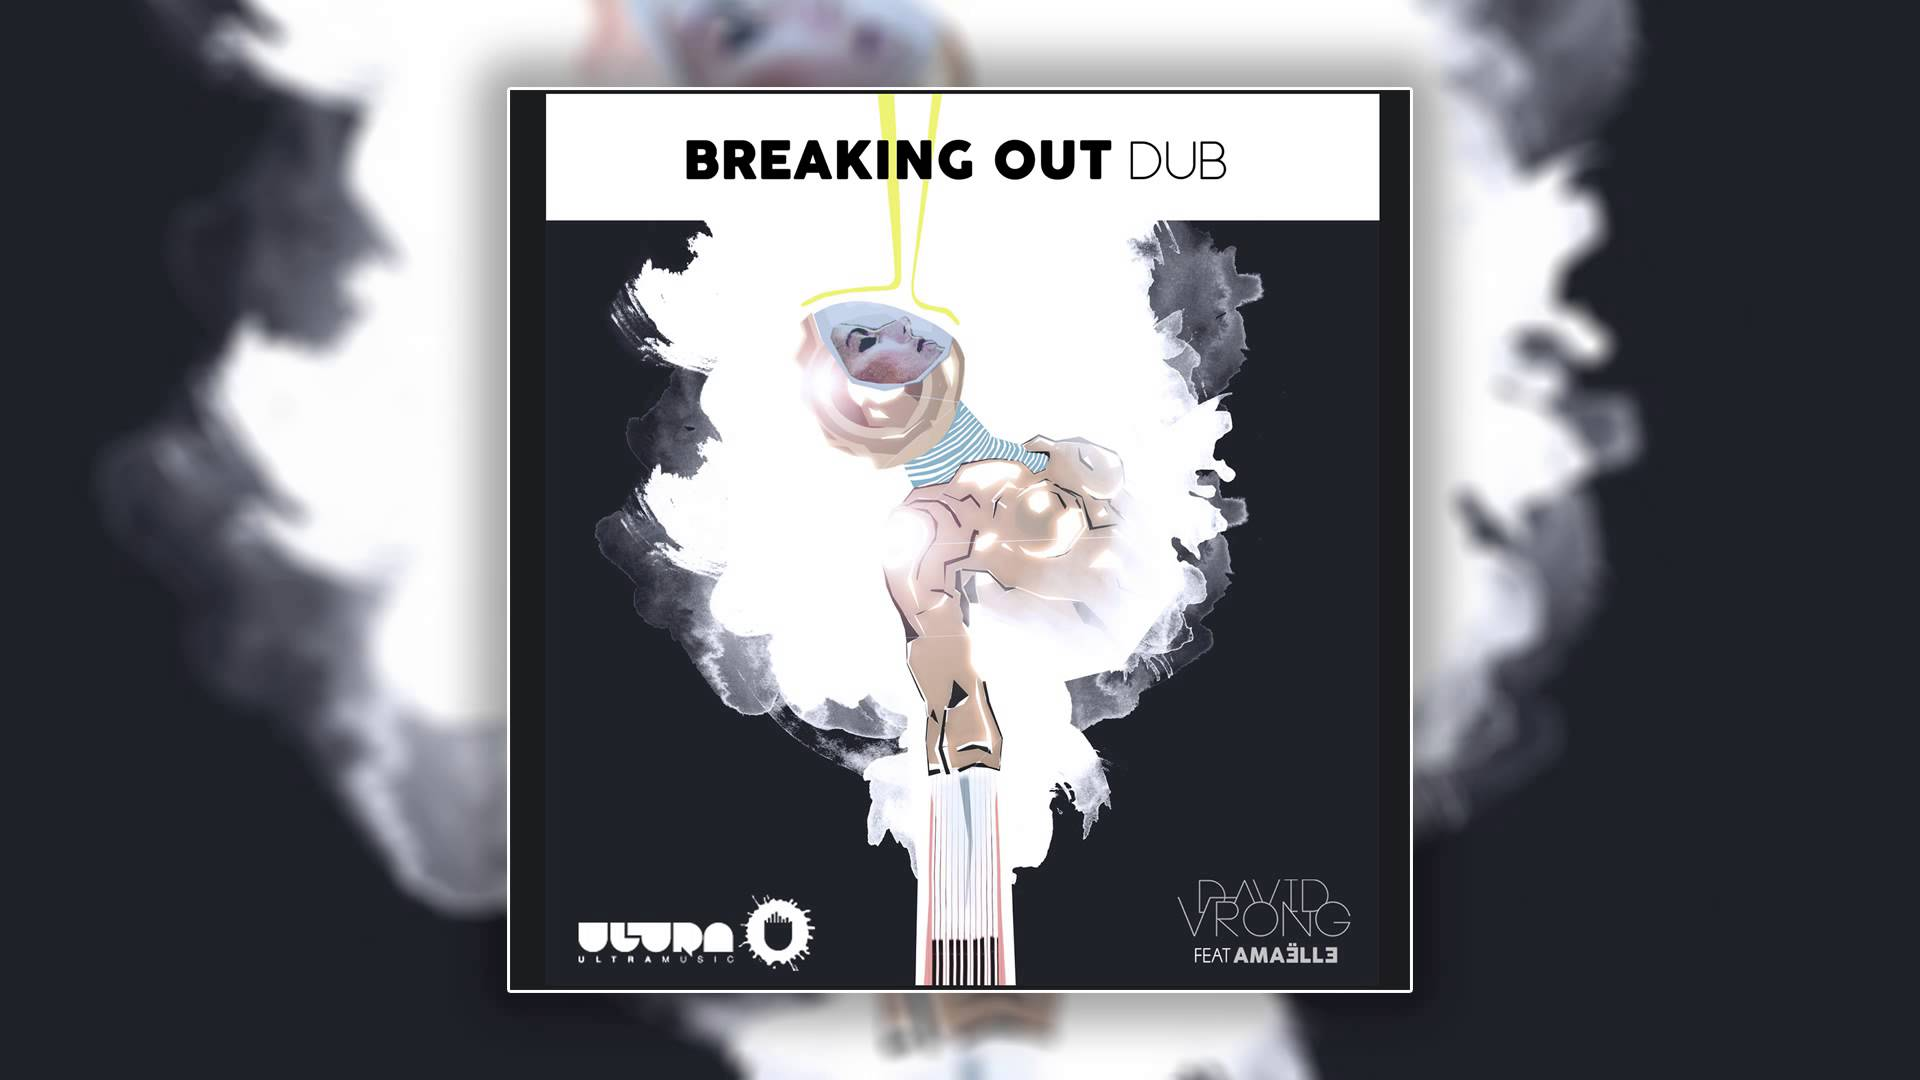 David Vrong feat. Amaëlle – Breaking Out (Dub Mix) [Cover Art]